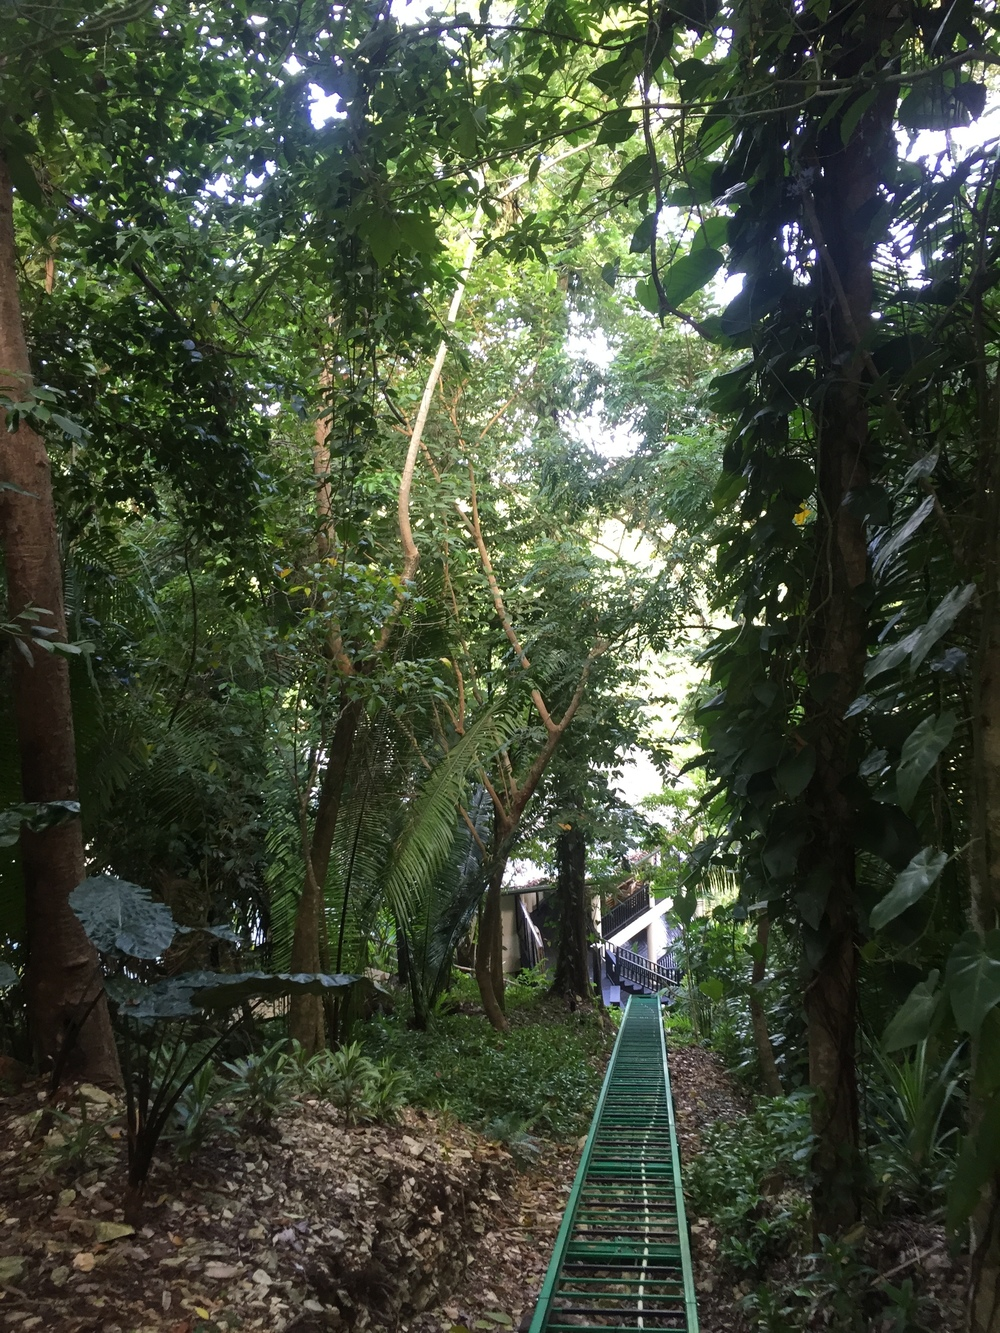 To get up and down around the lodge, we could either take a super long set of stairs (a workout, for sure!) or enjoy the ride up or down an electric-powered rainforest trolley.